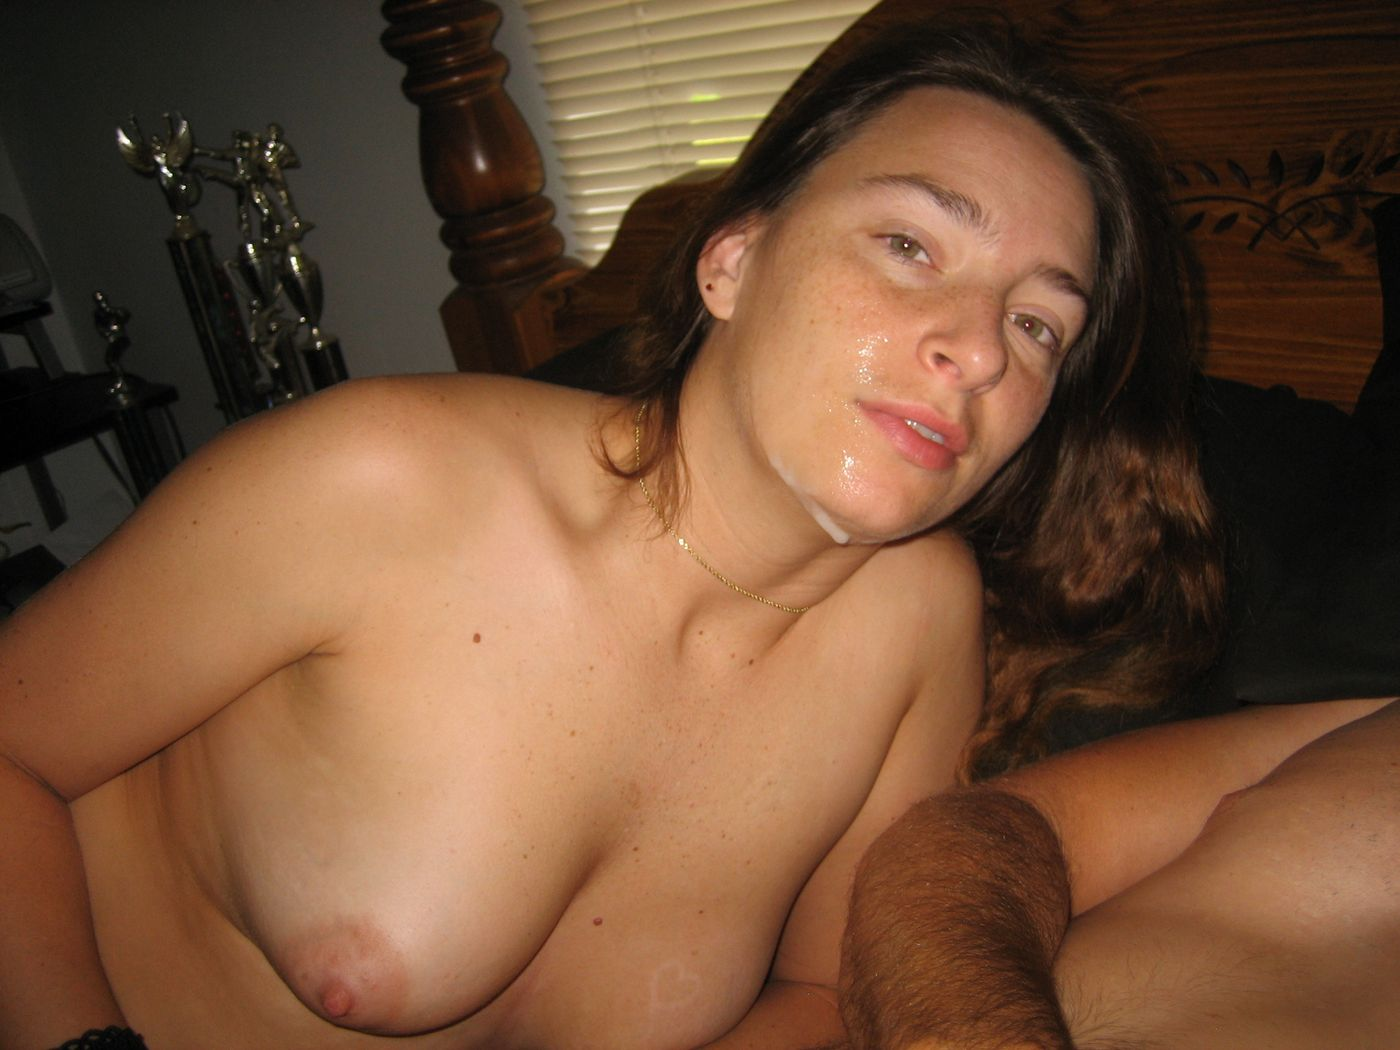 mature homemade porn vids Mature Amateur Sex Videos, Free Homemade Mature Amateur Porn.